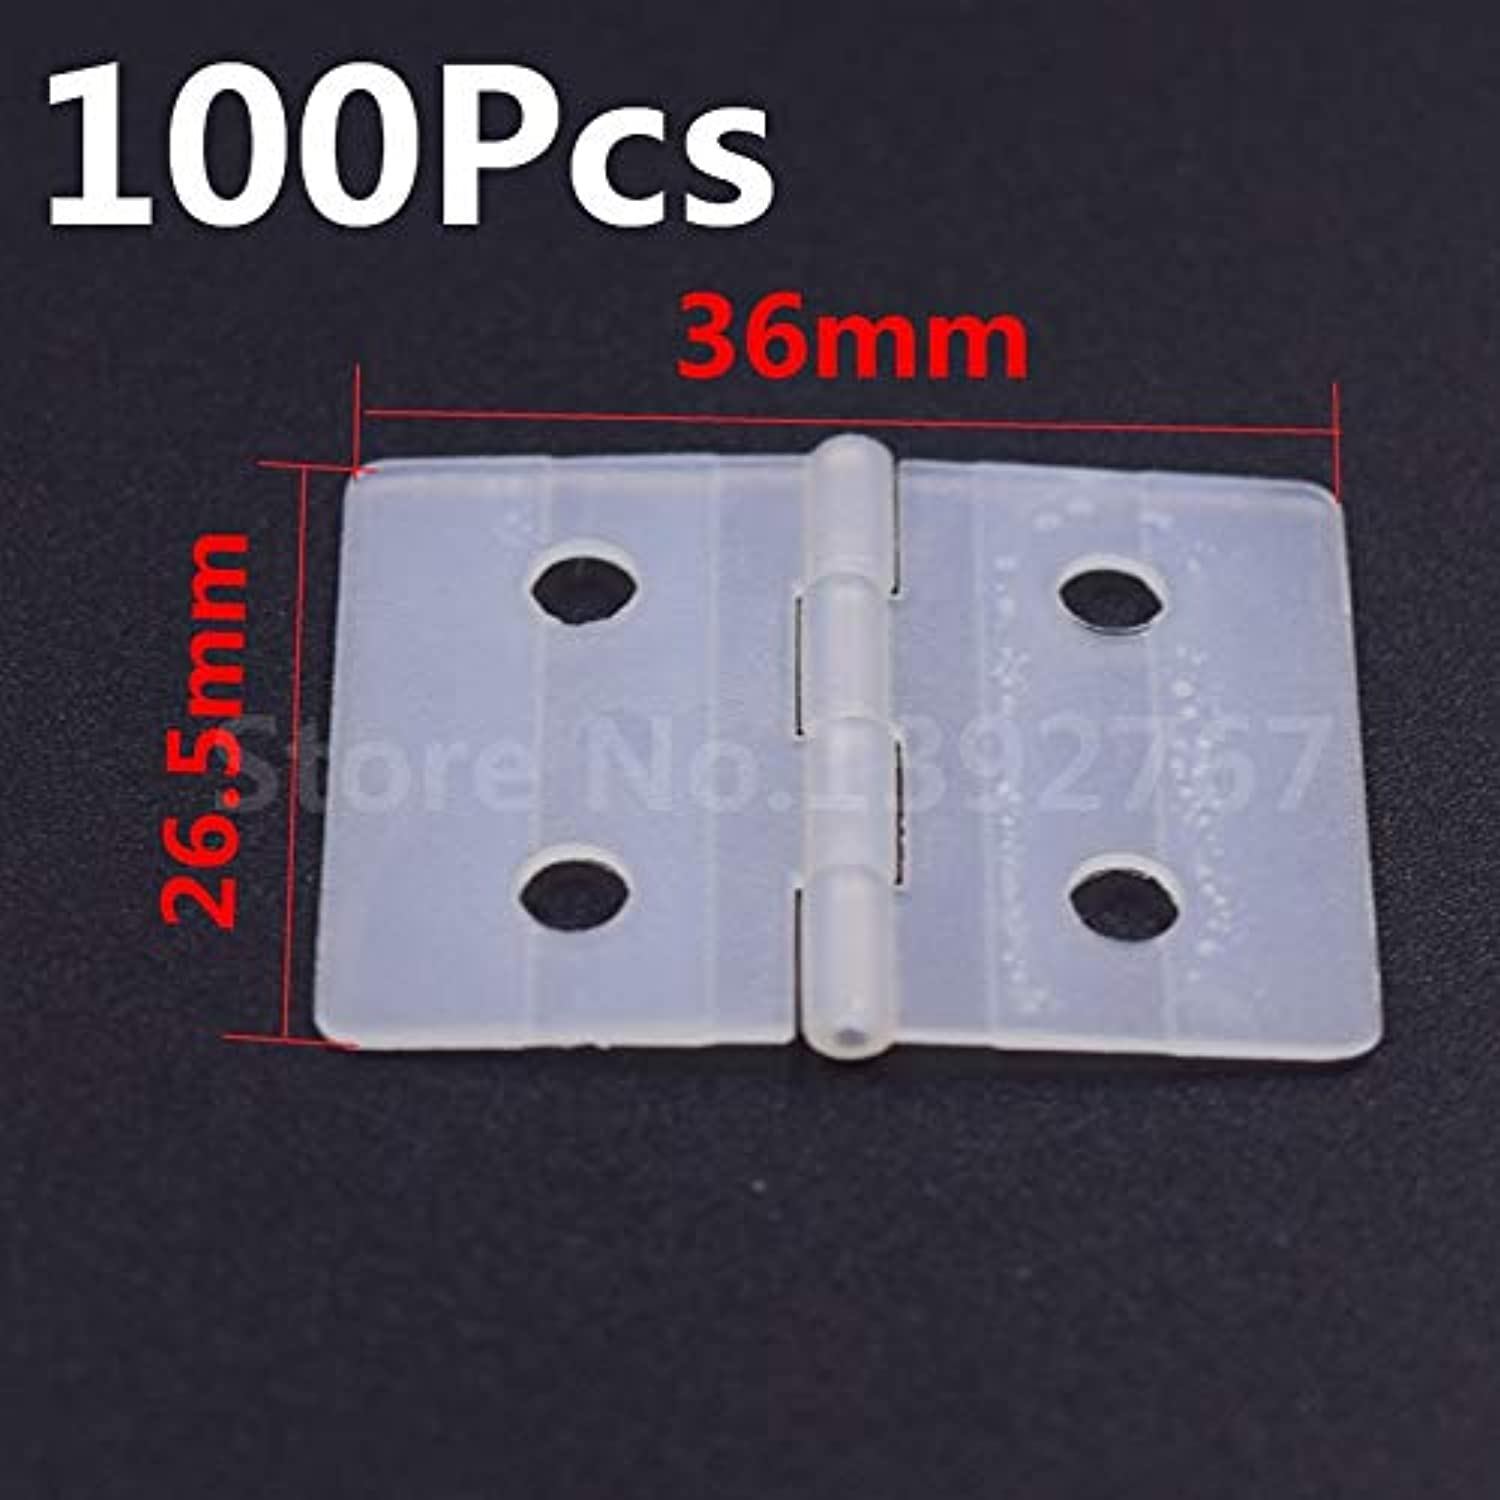 Generic 100Pcs FM12202 Nylon & Pinned Hinge L20 X W36mm 1628.5mm 26.536mm Flymodel RC Airplane RC Plane Remote Control RC Helicopter Size 3